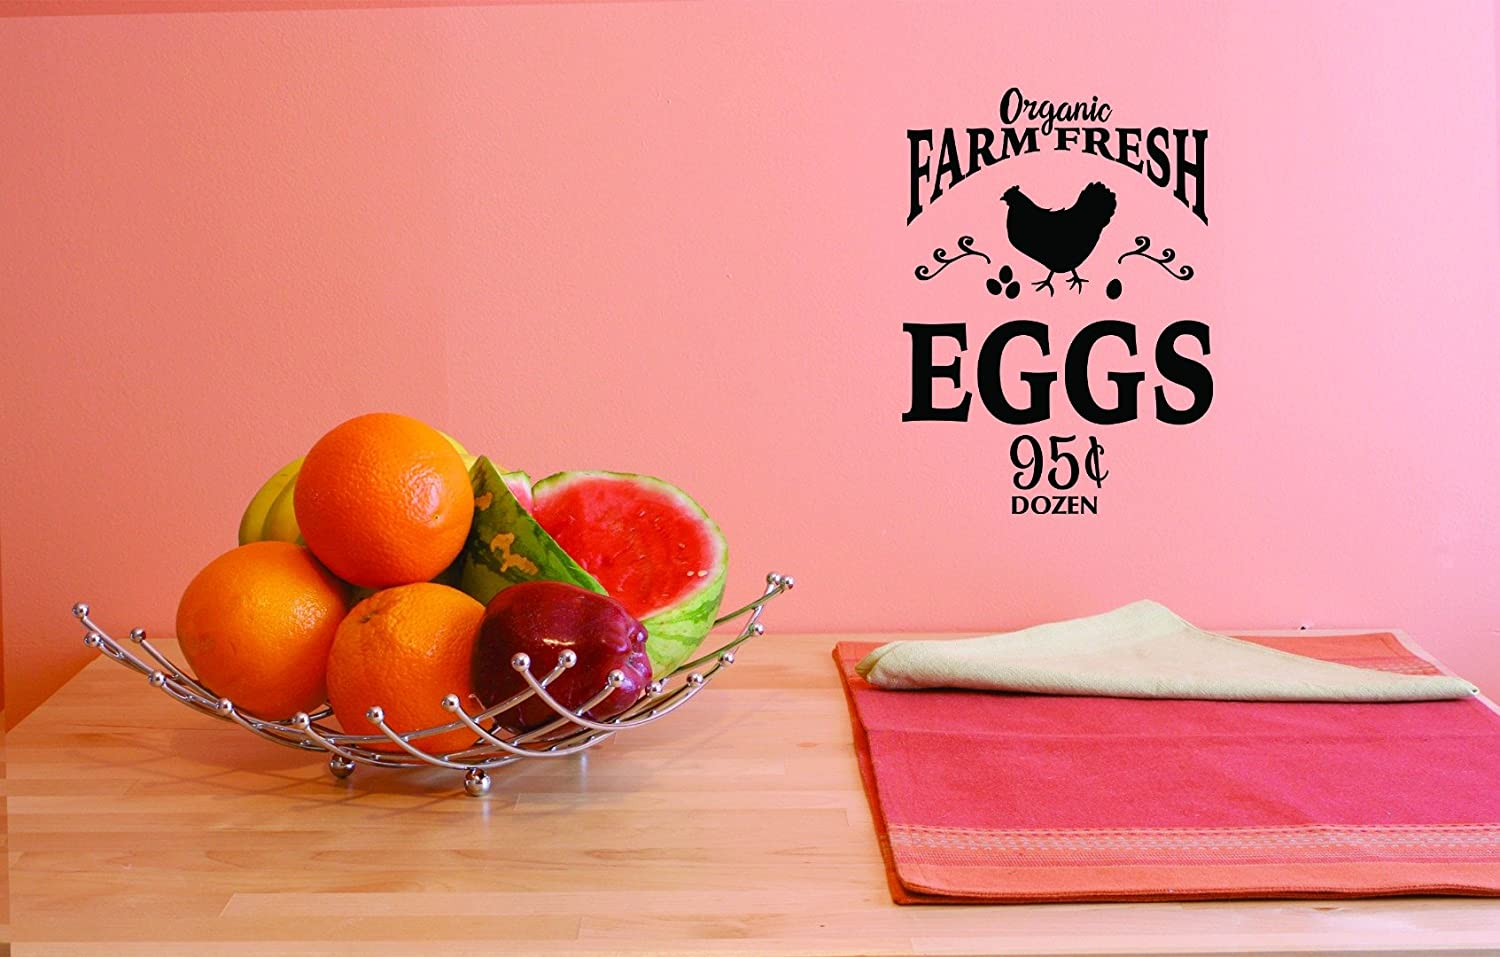 Design with Vinyl JER 1756 2 Hot New Decals Organic Farm Fresh Eggs 95 Cents Dozen Wall Art Size 14 Inches x 28 Inches Color Black 14 x 28